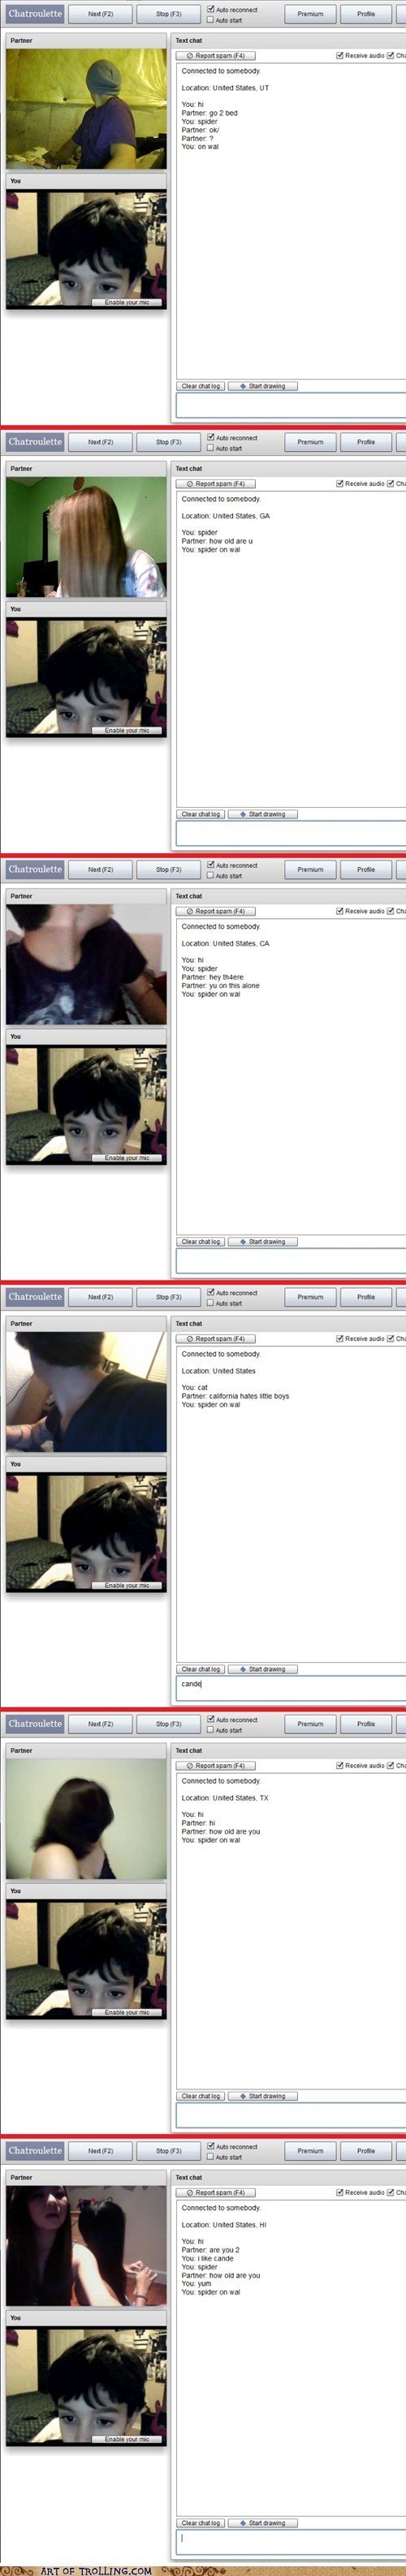 Chat Roulette kid spider - 6404706048